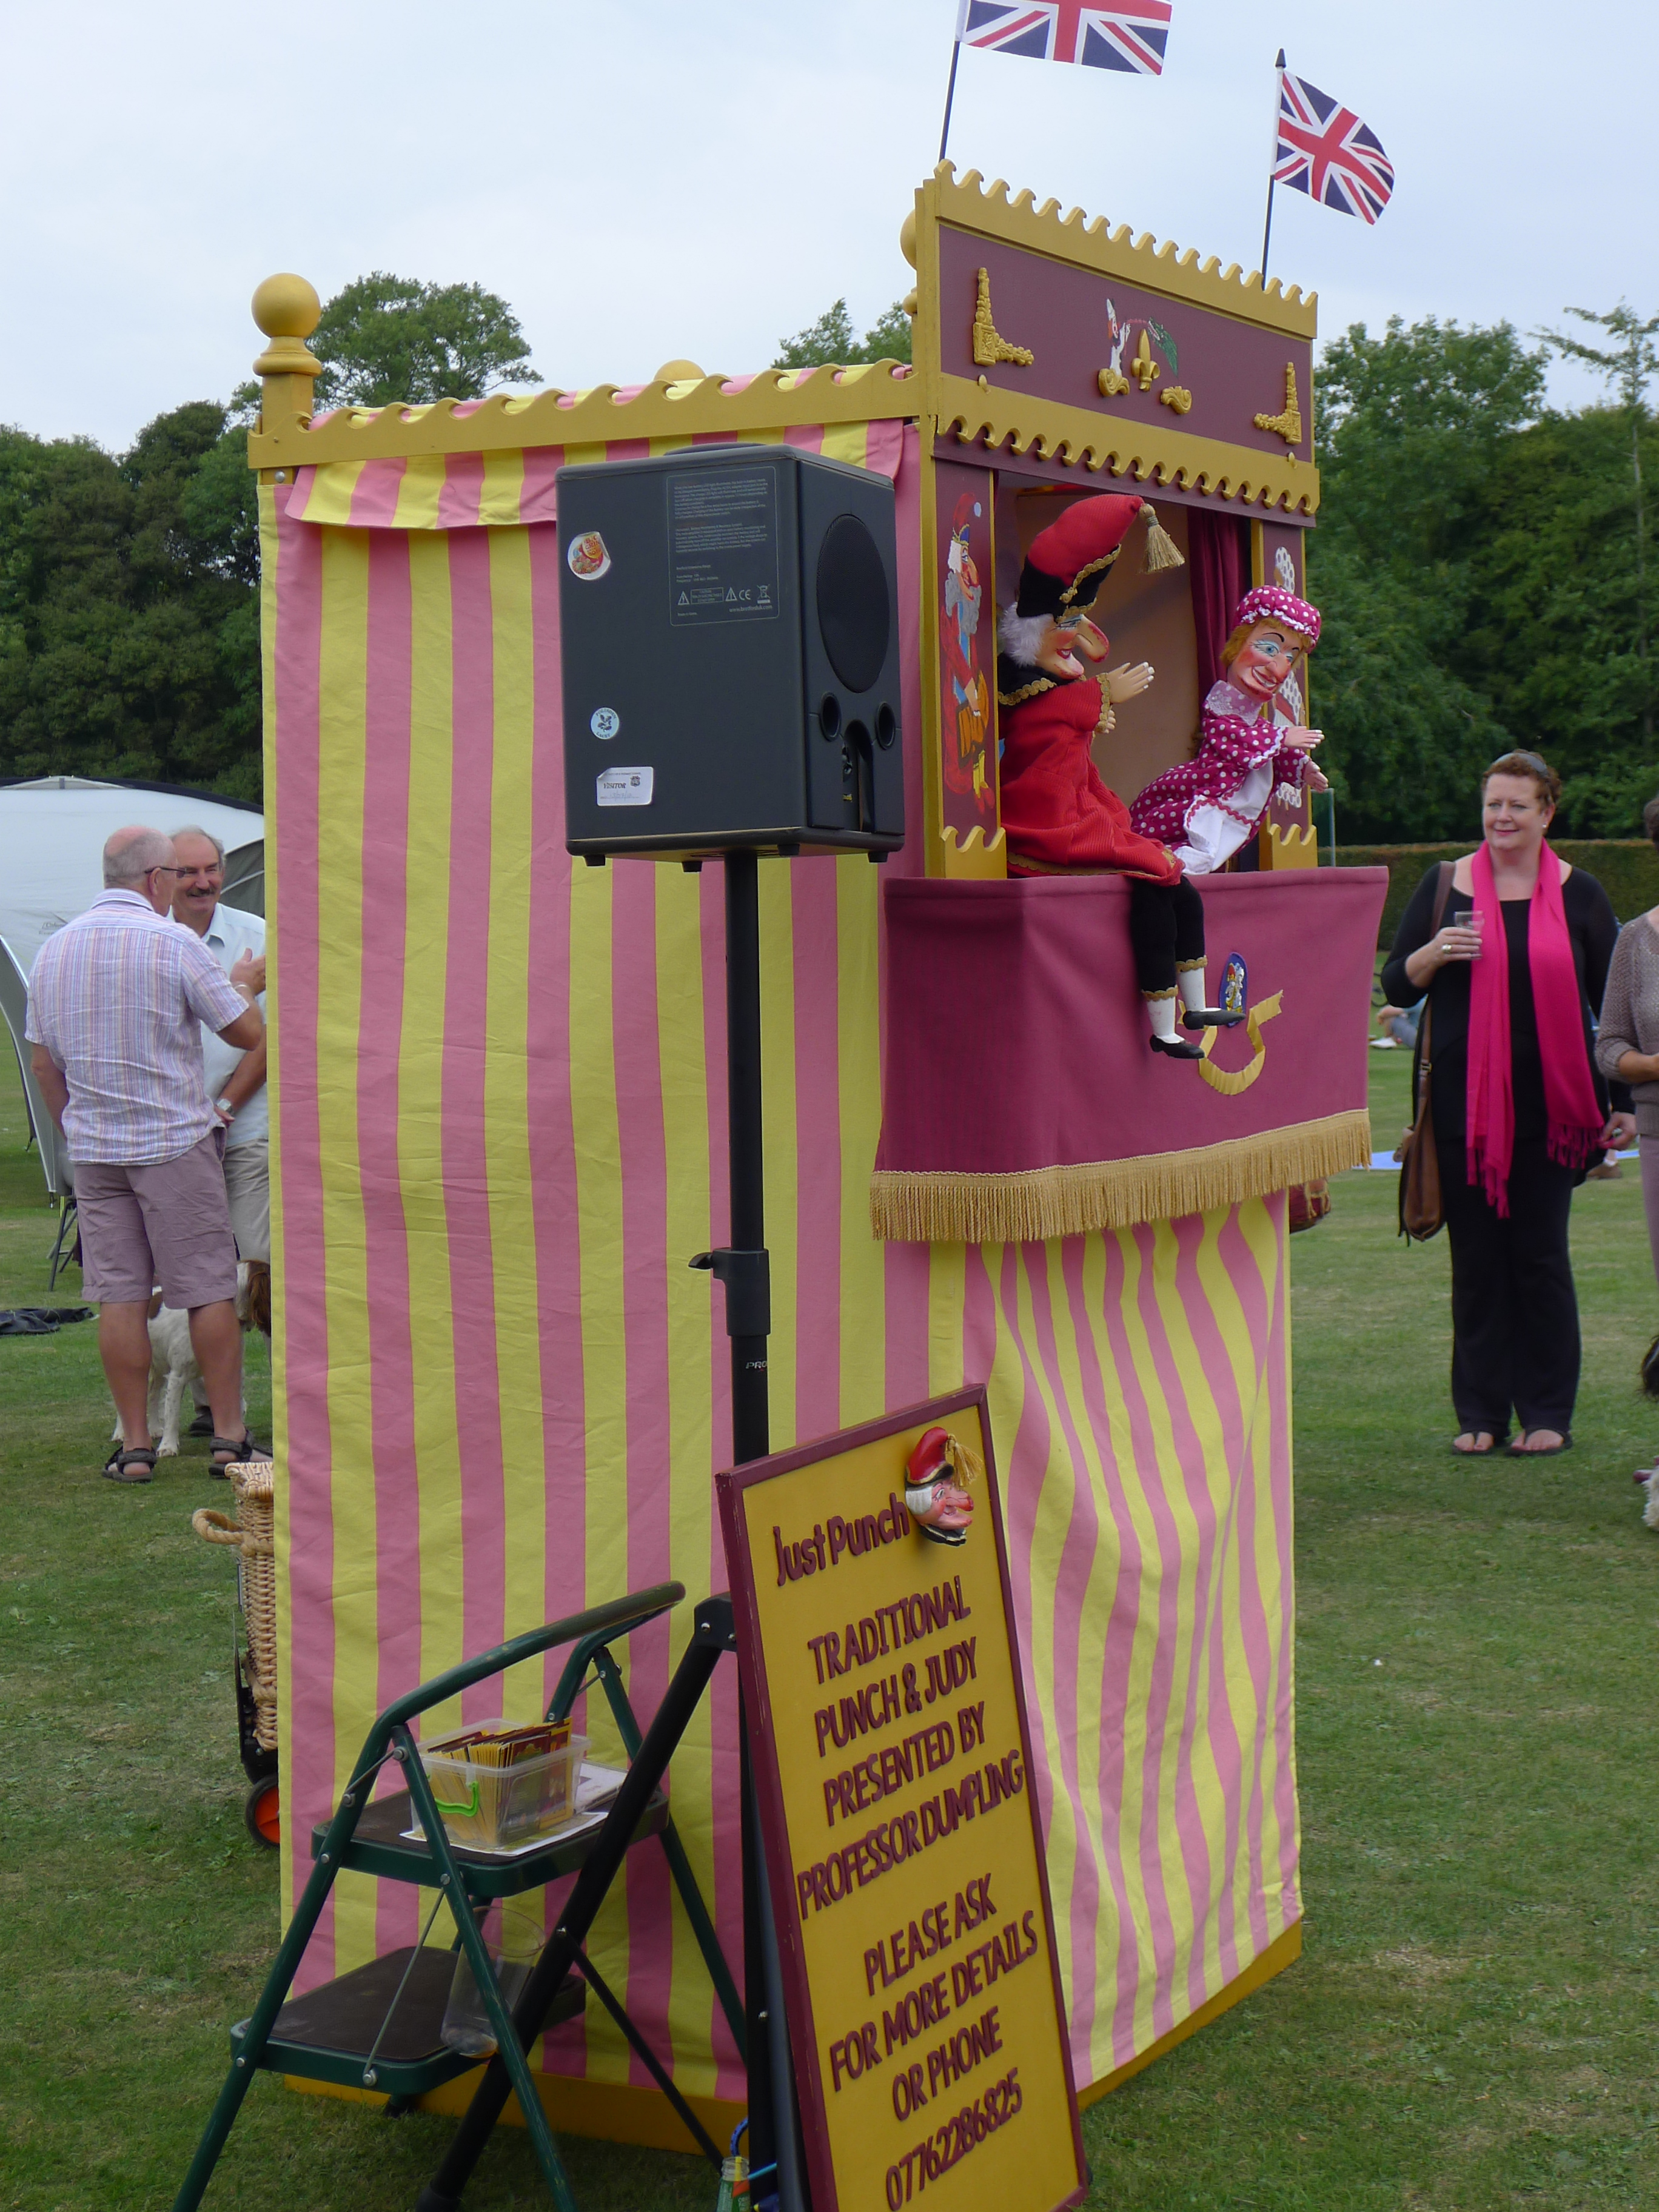 The horror that is Punch & Judy